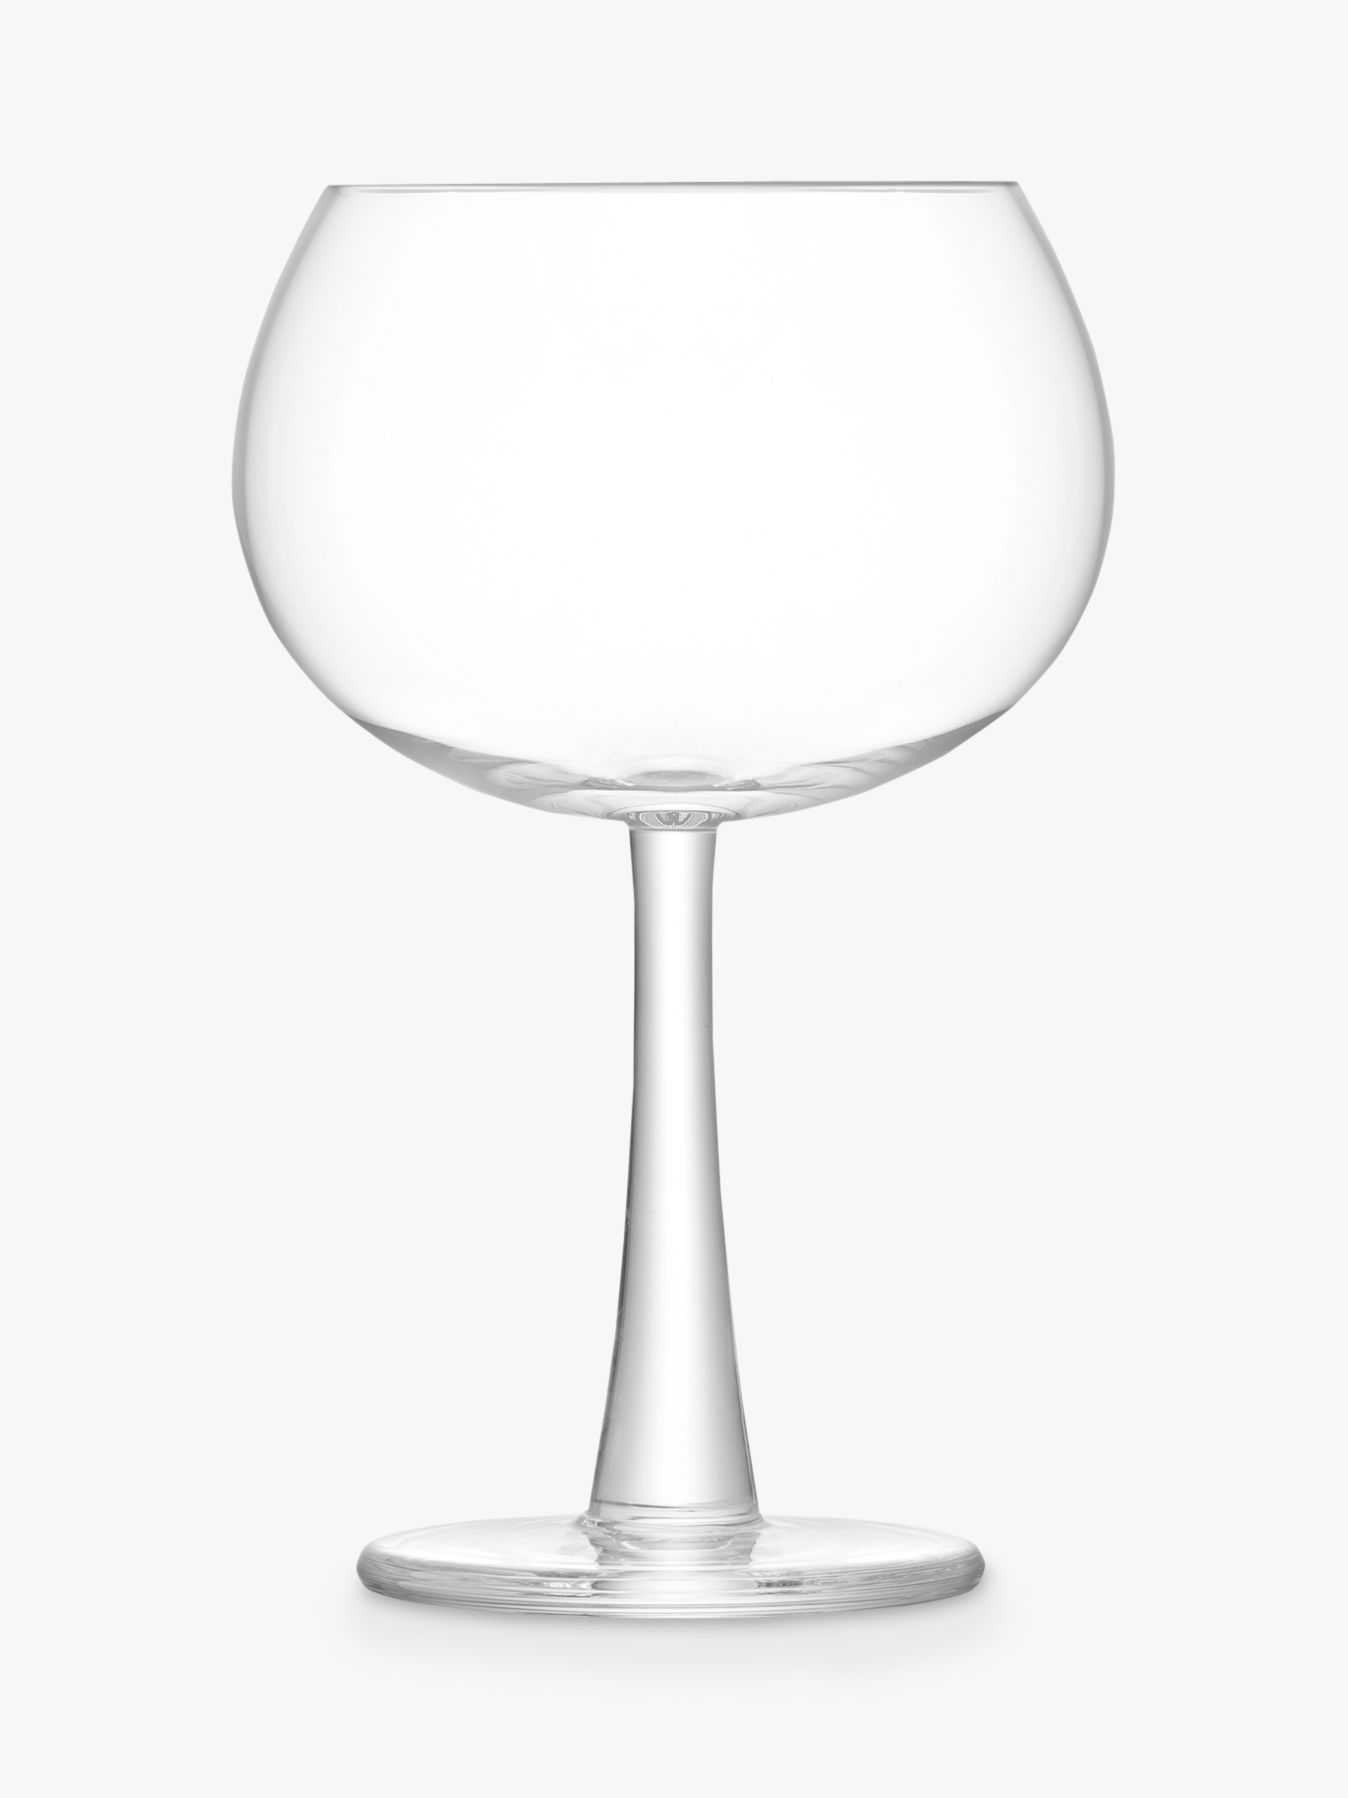 LSA International LSA International Gin Balloon Glass, 420ml, Set of 2